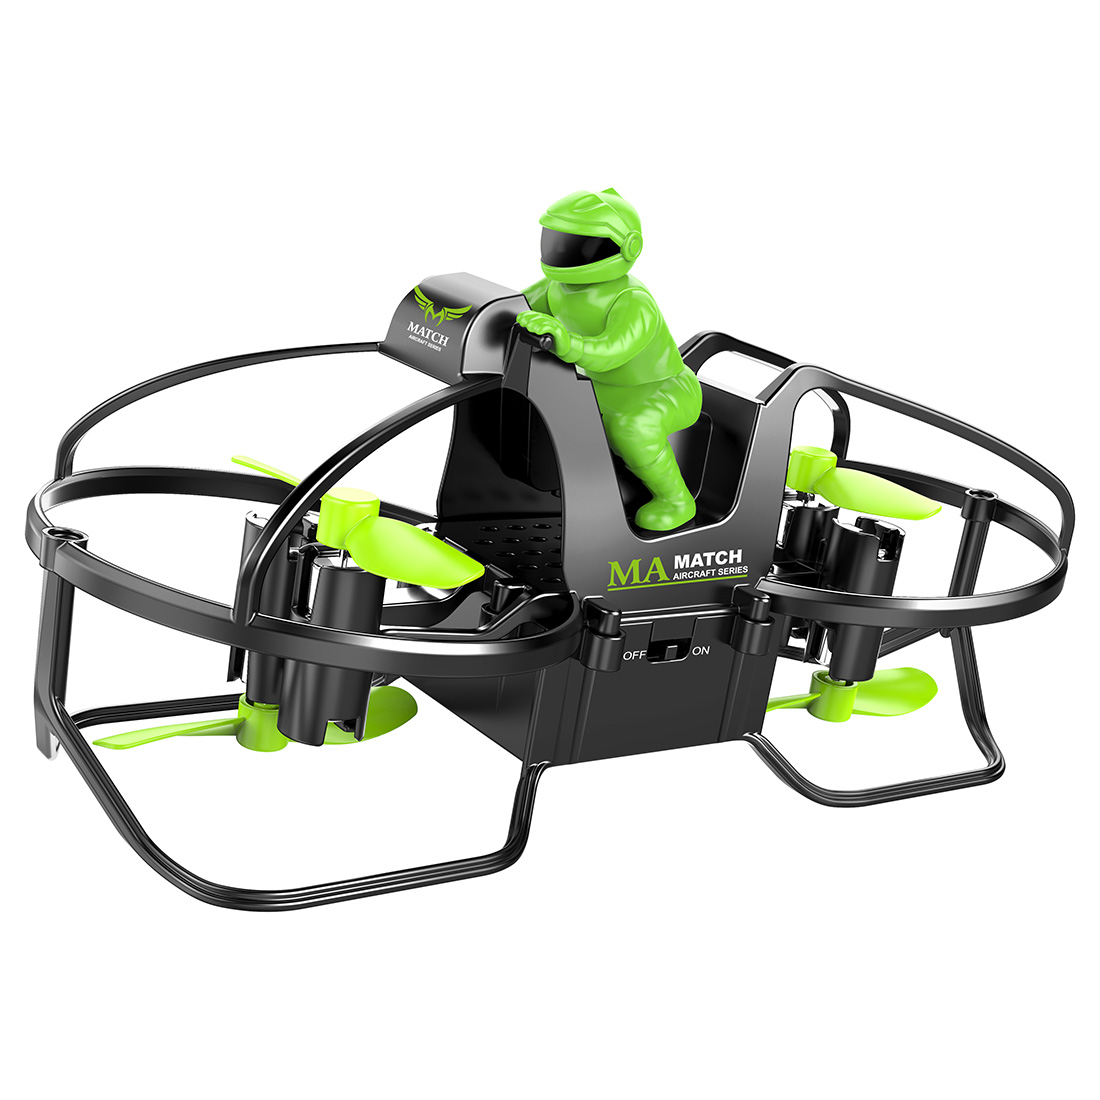 Watch Gravity Sensing RC Motorcycle Aircraft Four-axis Fixed-height Motorcycle Aircraft Gift Toy